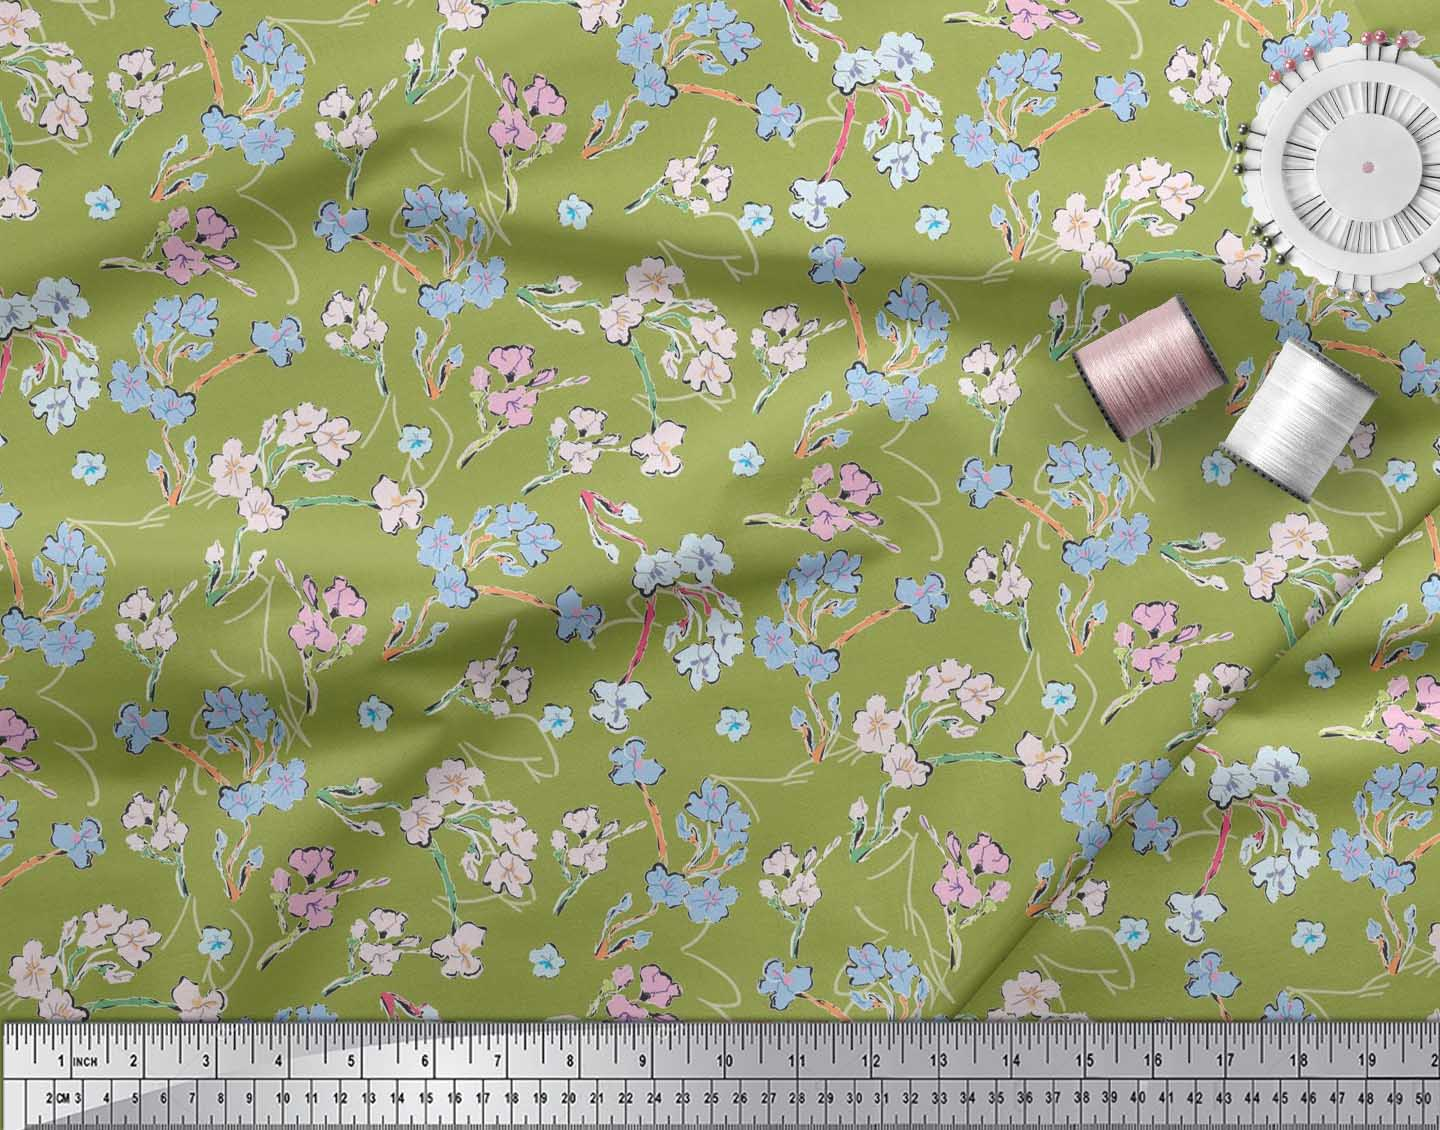 Soimoi-Cotton-Poplin-Fabric-Artistic-Floral-Print-Sewing-Fabric-KUE thumbnail 3